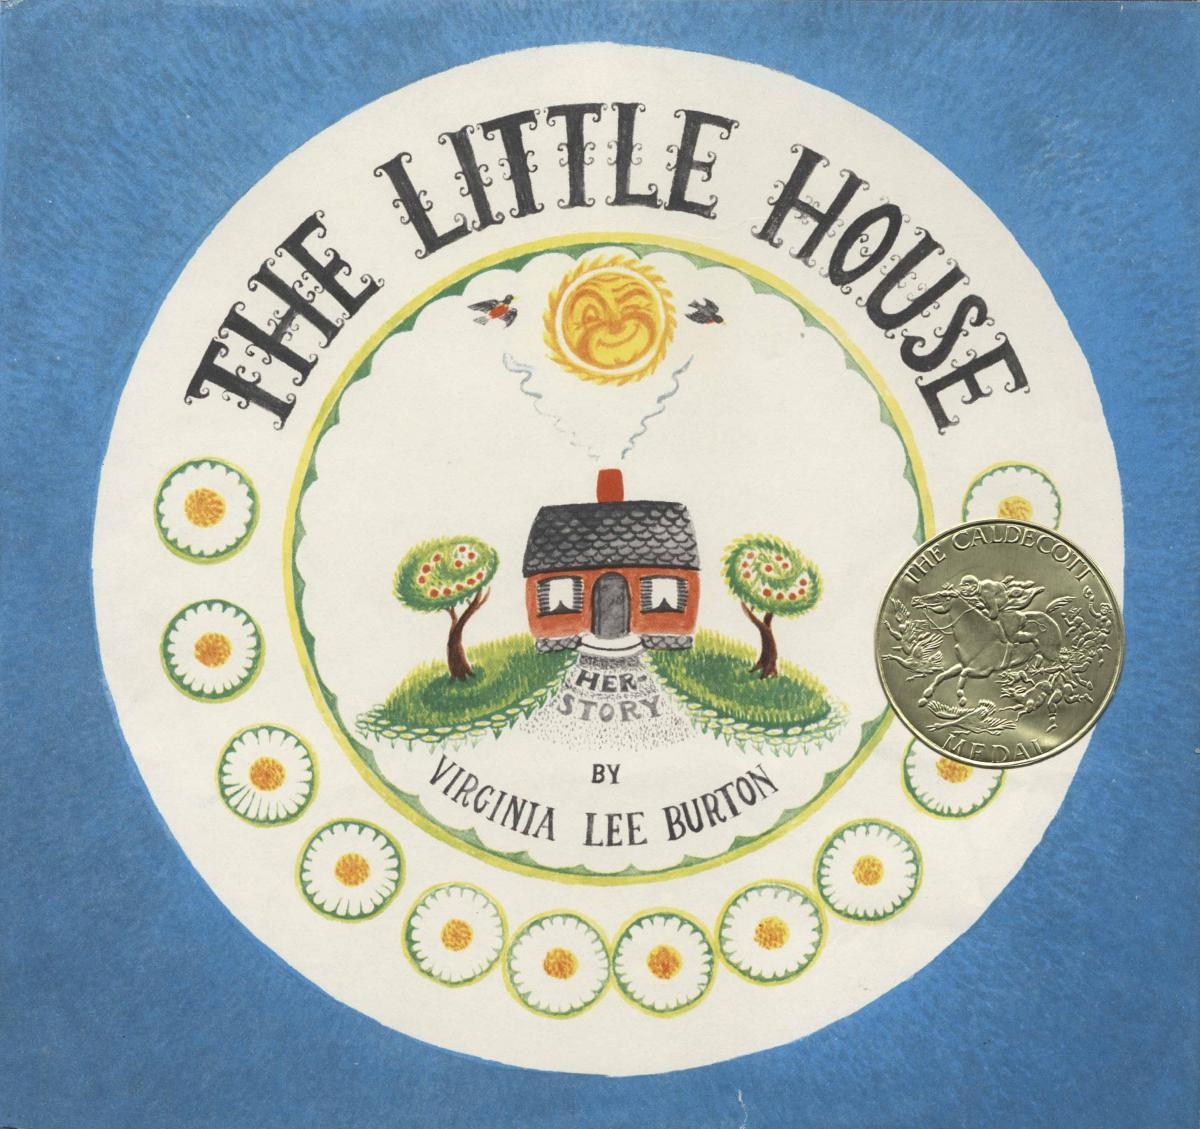 The Little House book cover image